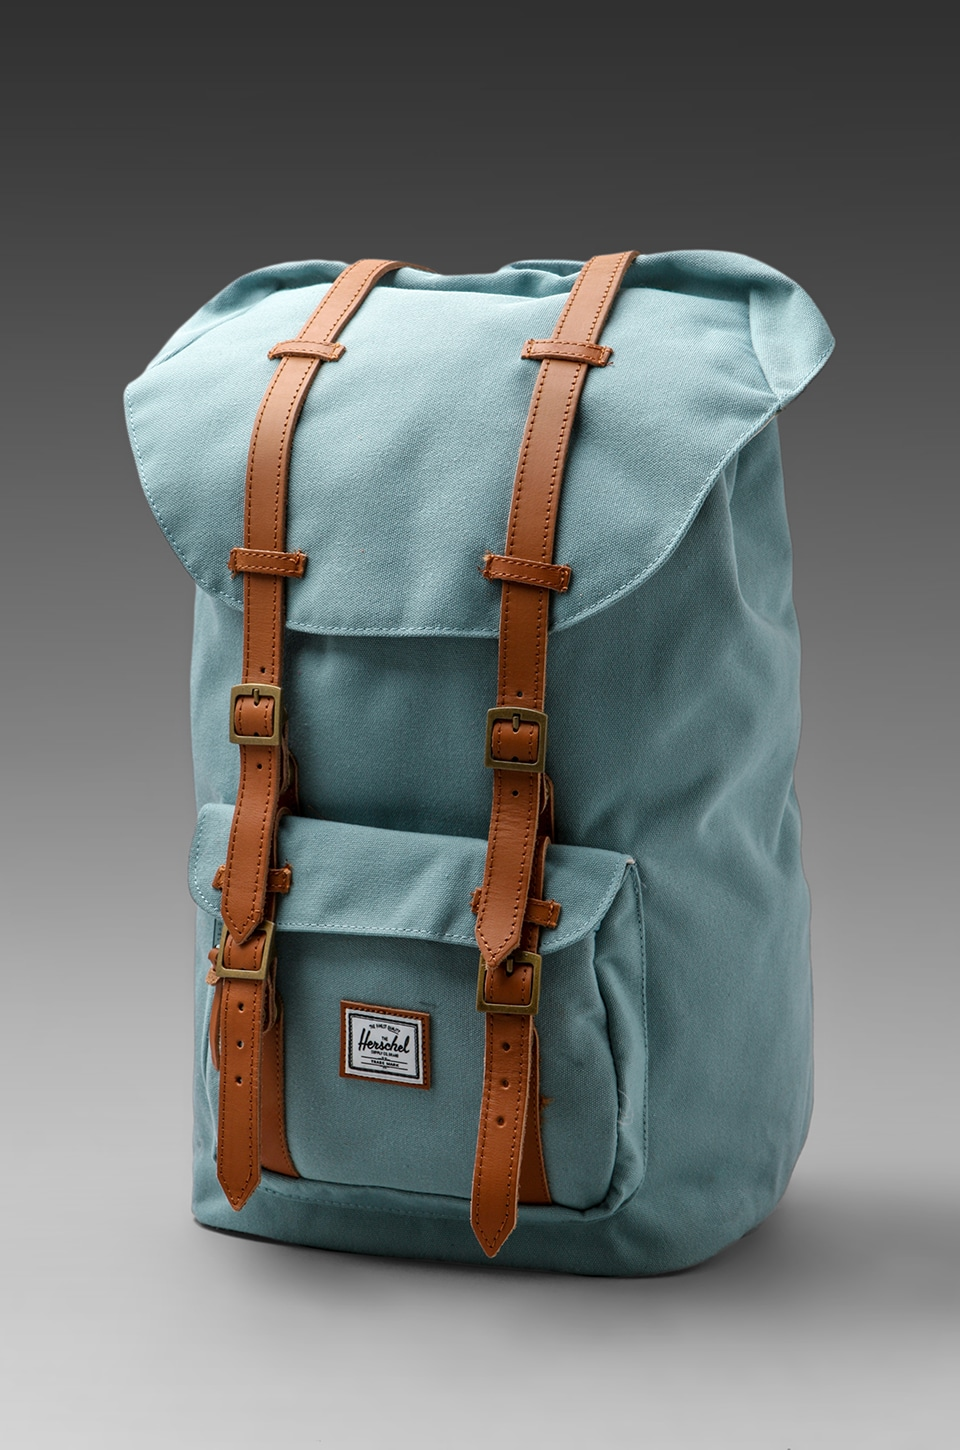 Herschel Supply Co. Bad Hills Workshop Little America/Bird Lining in Sea Foam